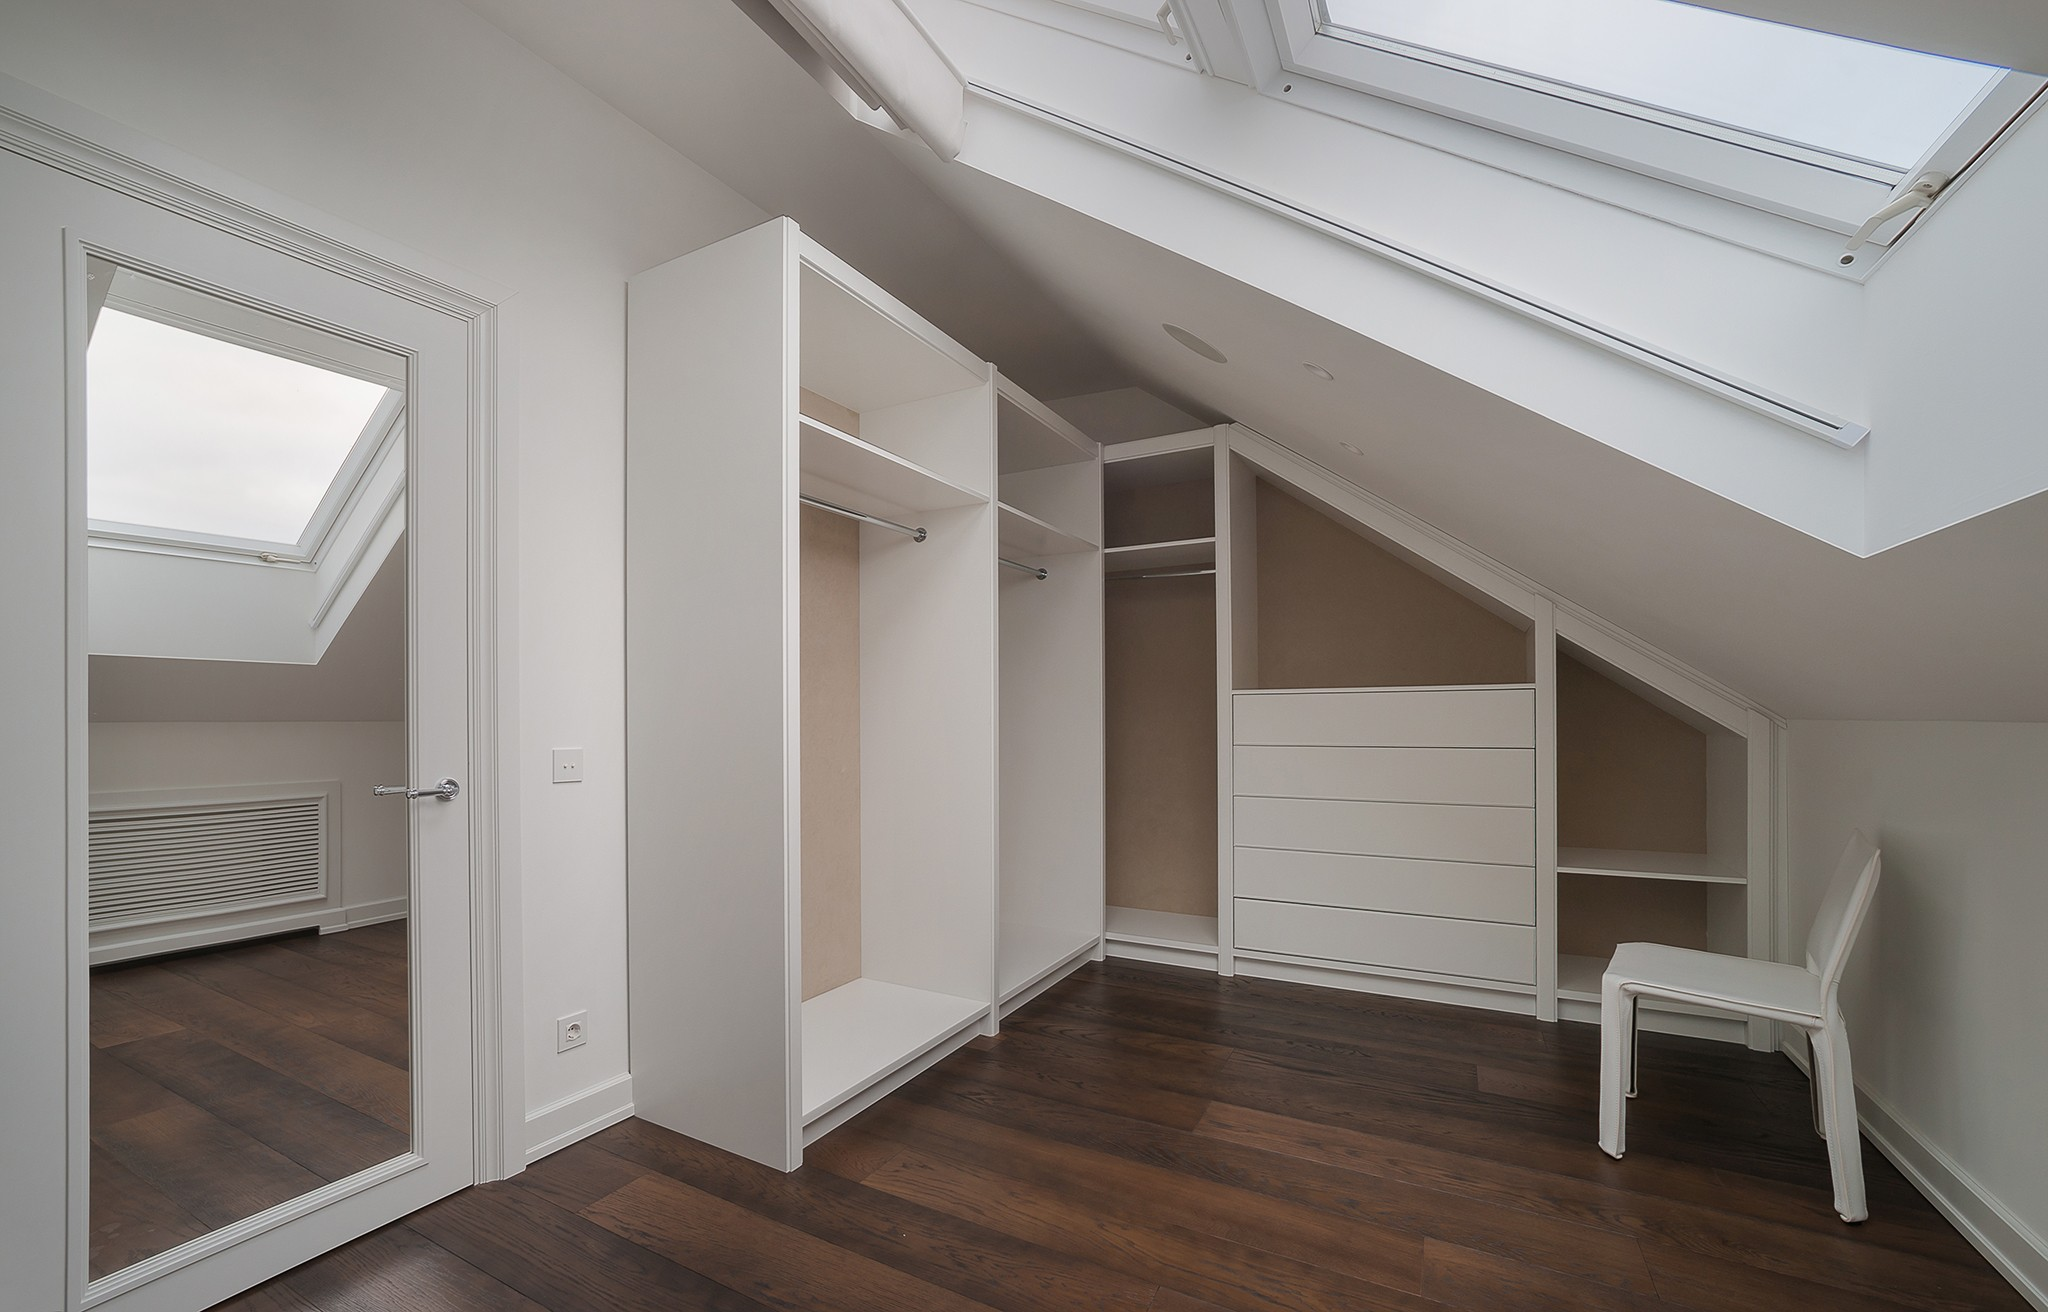 Wardrobe in the format of interior photography